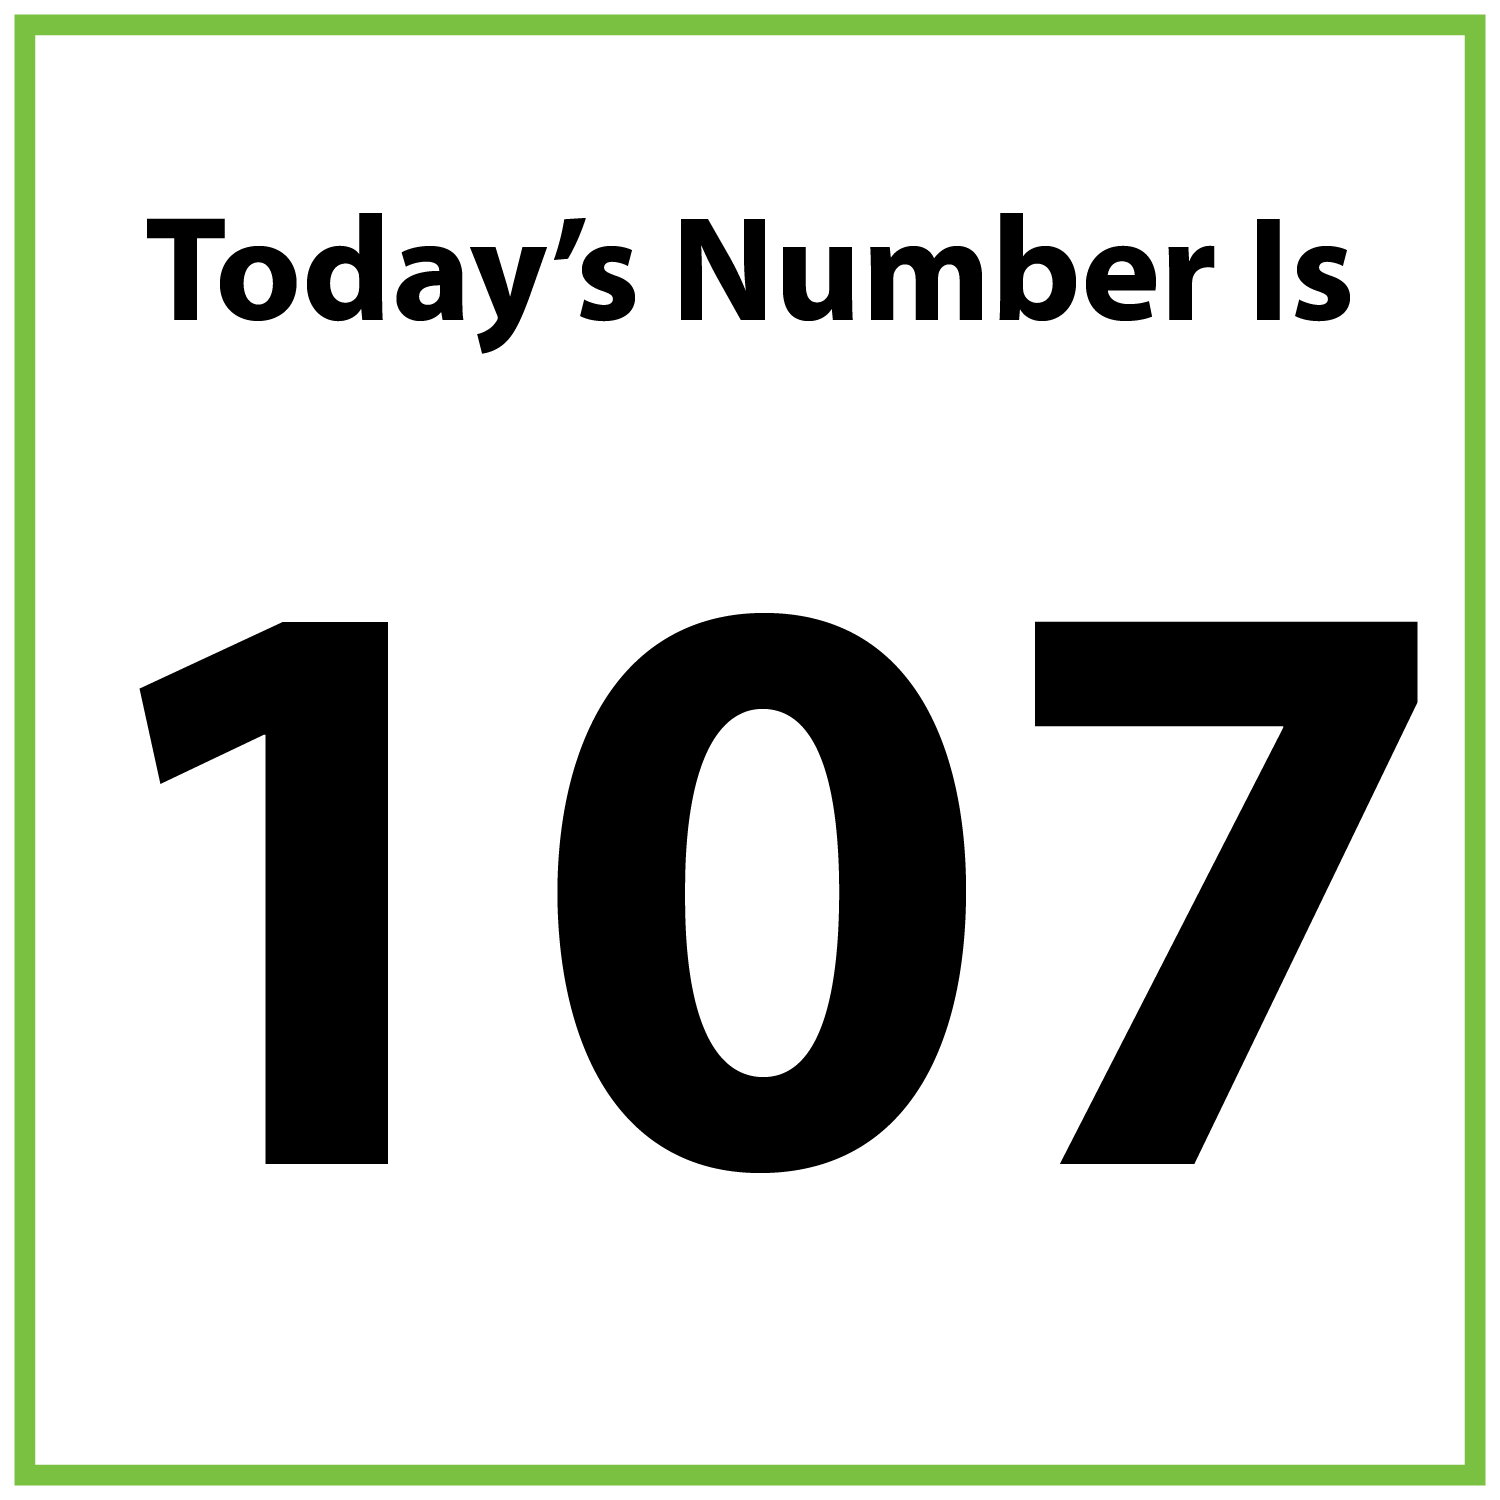 Today's number is 107.